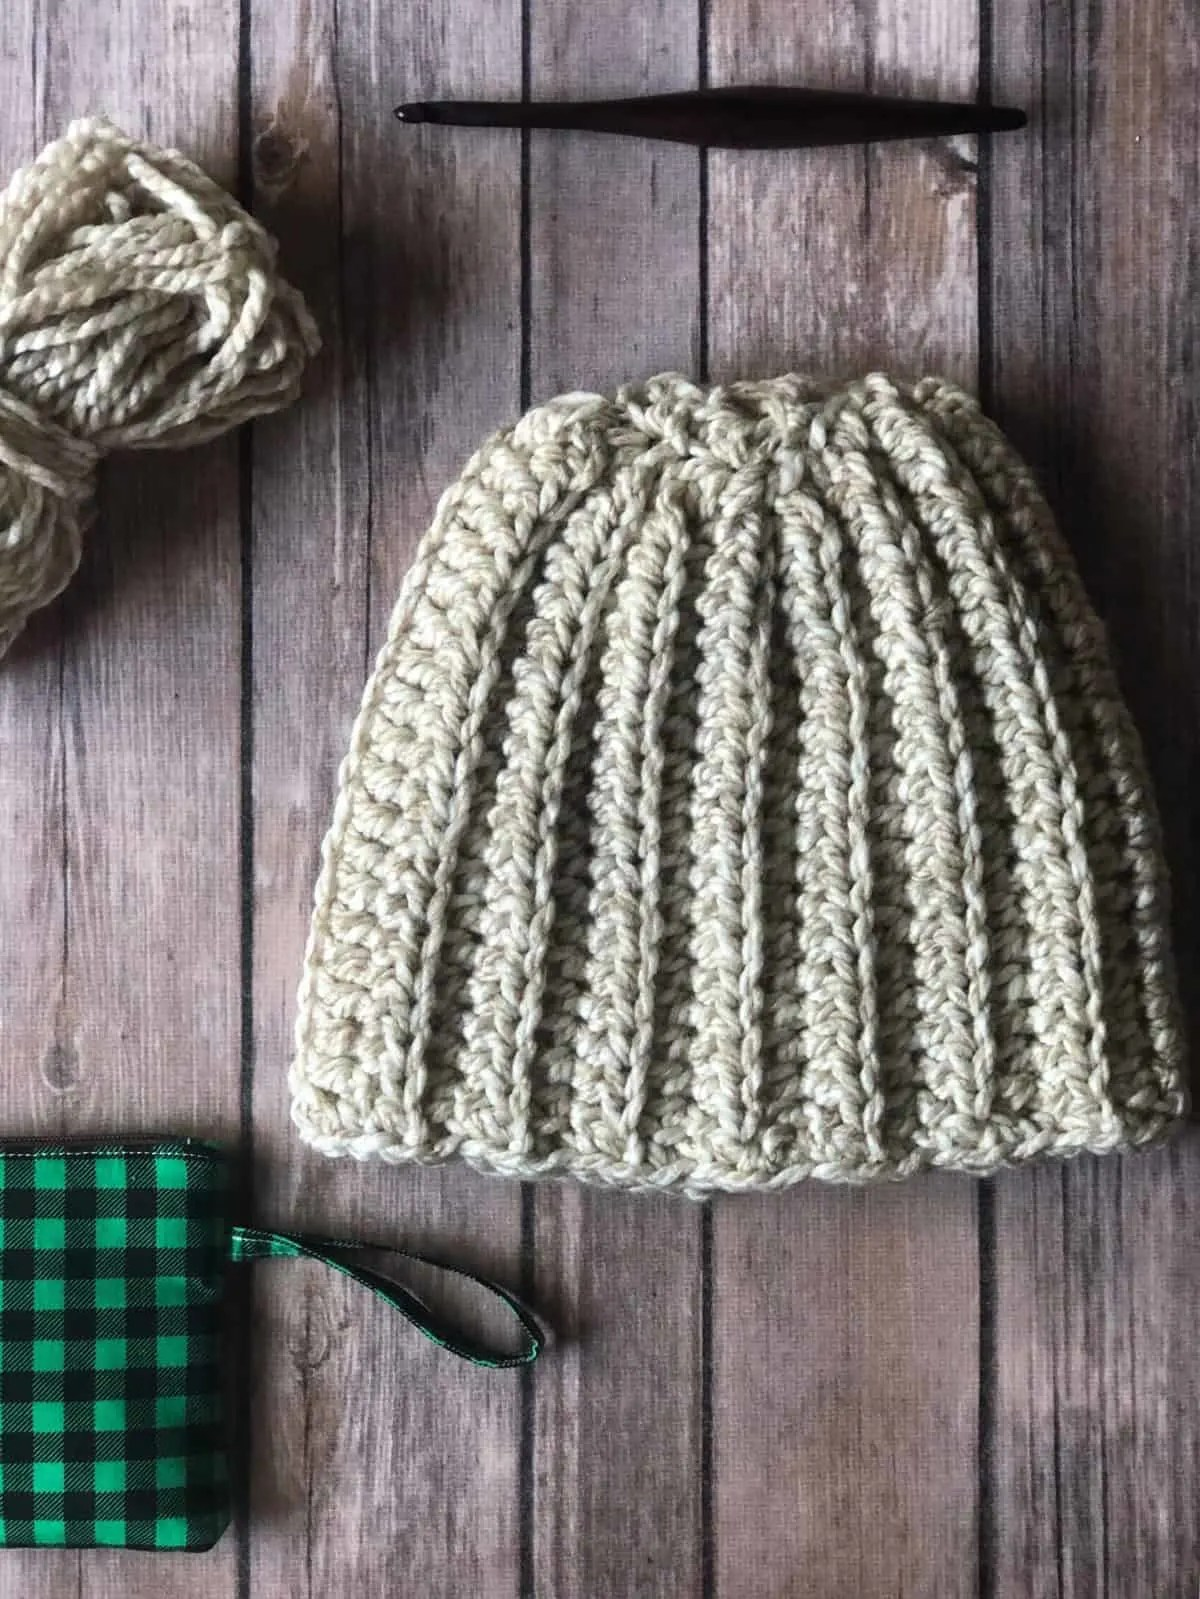 Backcountry Beanie by Crystal @ Christa Co Design